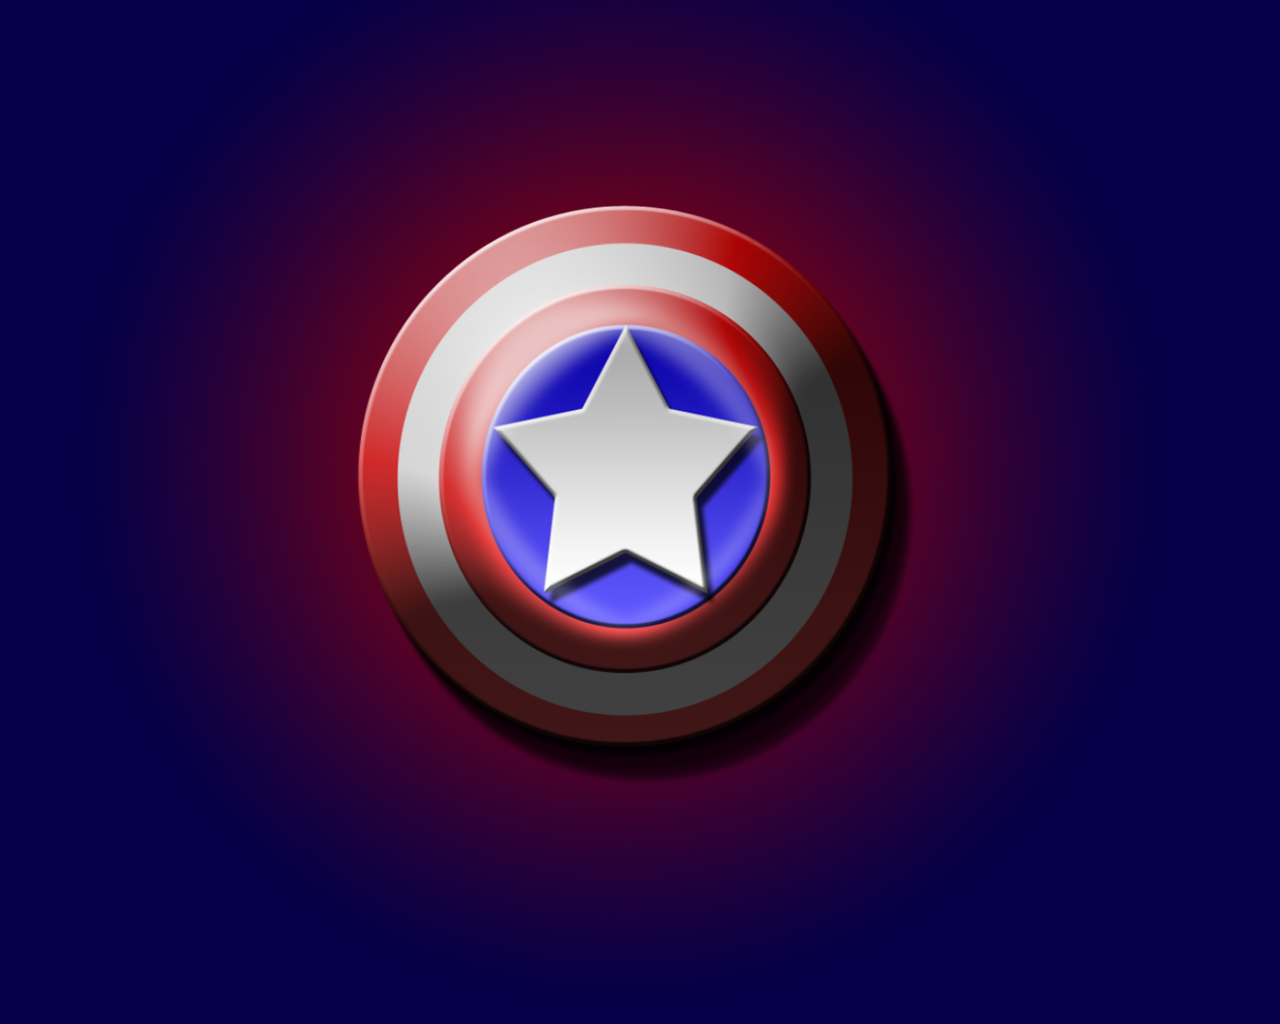 Captain America Logo Wallpaper   Comic Imagescom 1280x1024